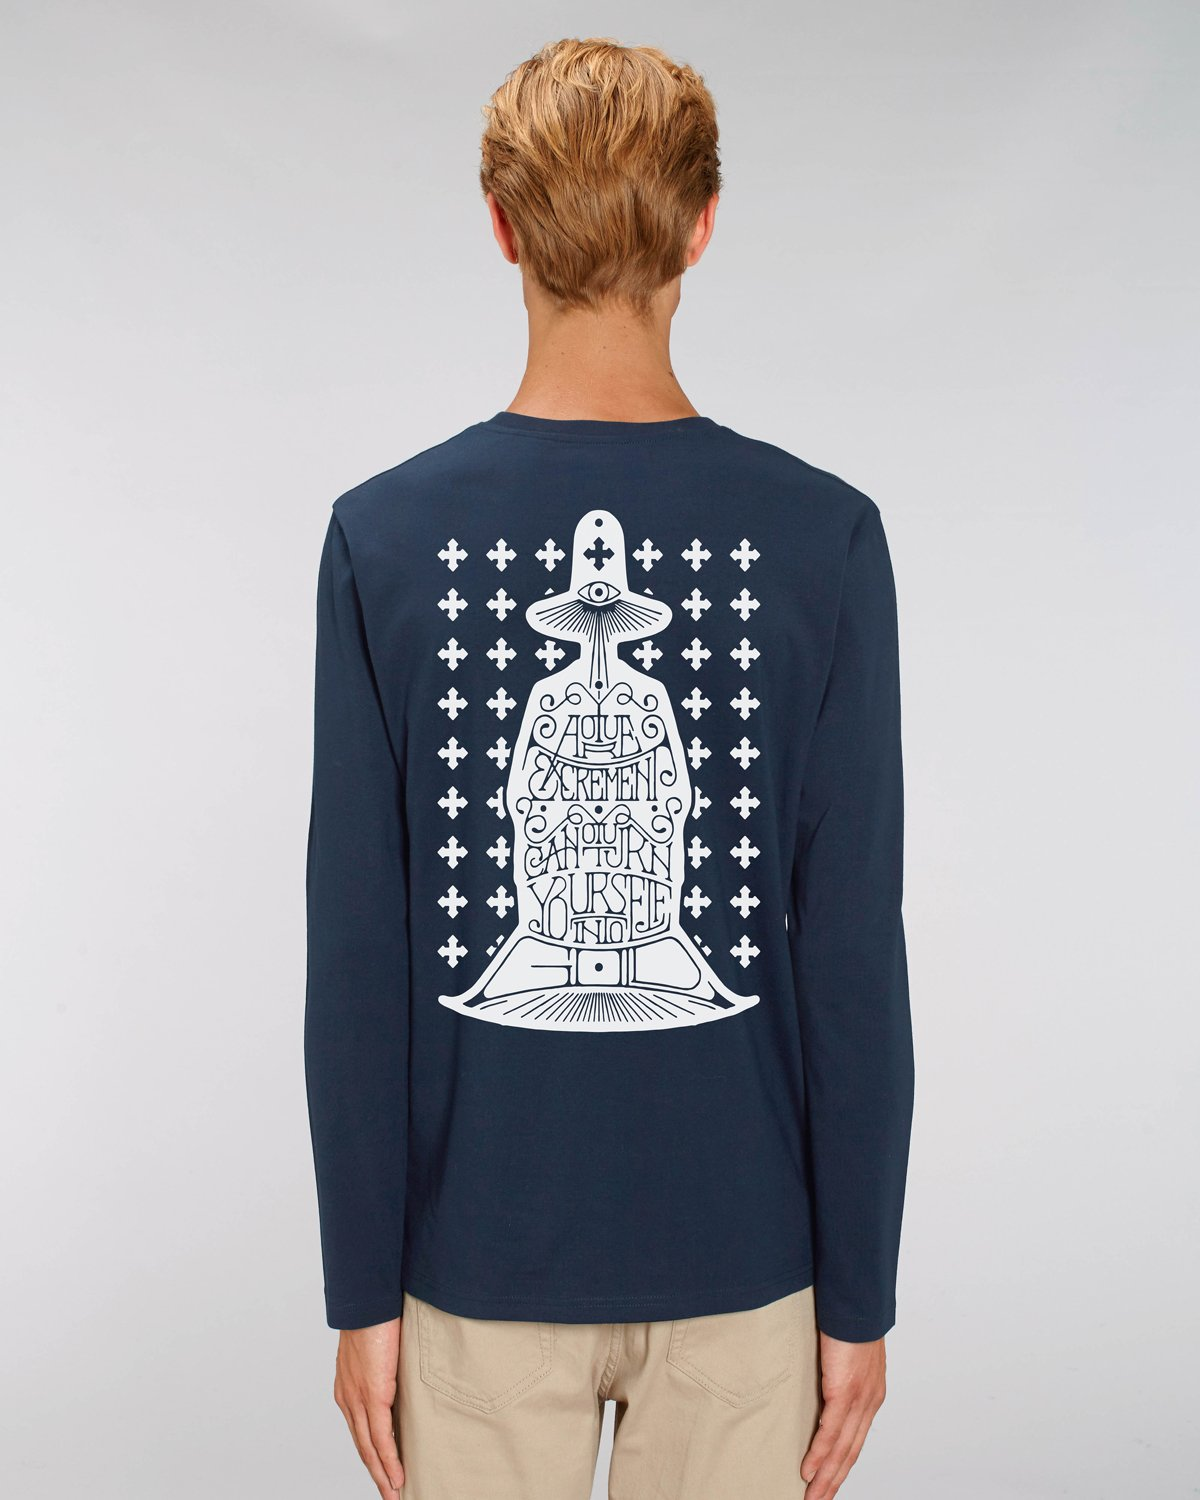 Daren Newman 'Holy Mountain' Long Sleeve T-Shirt